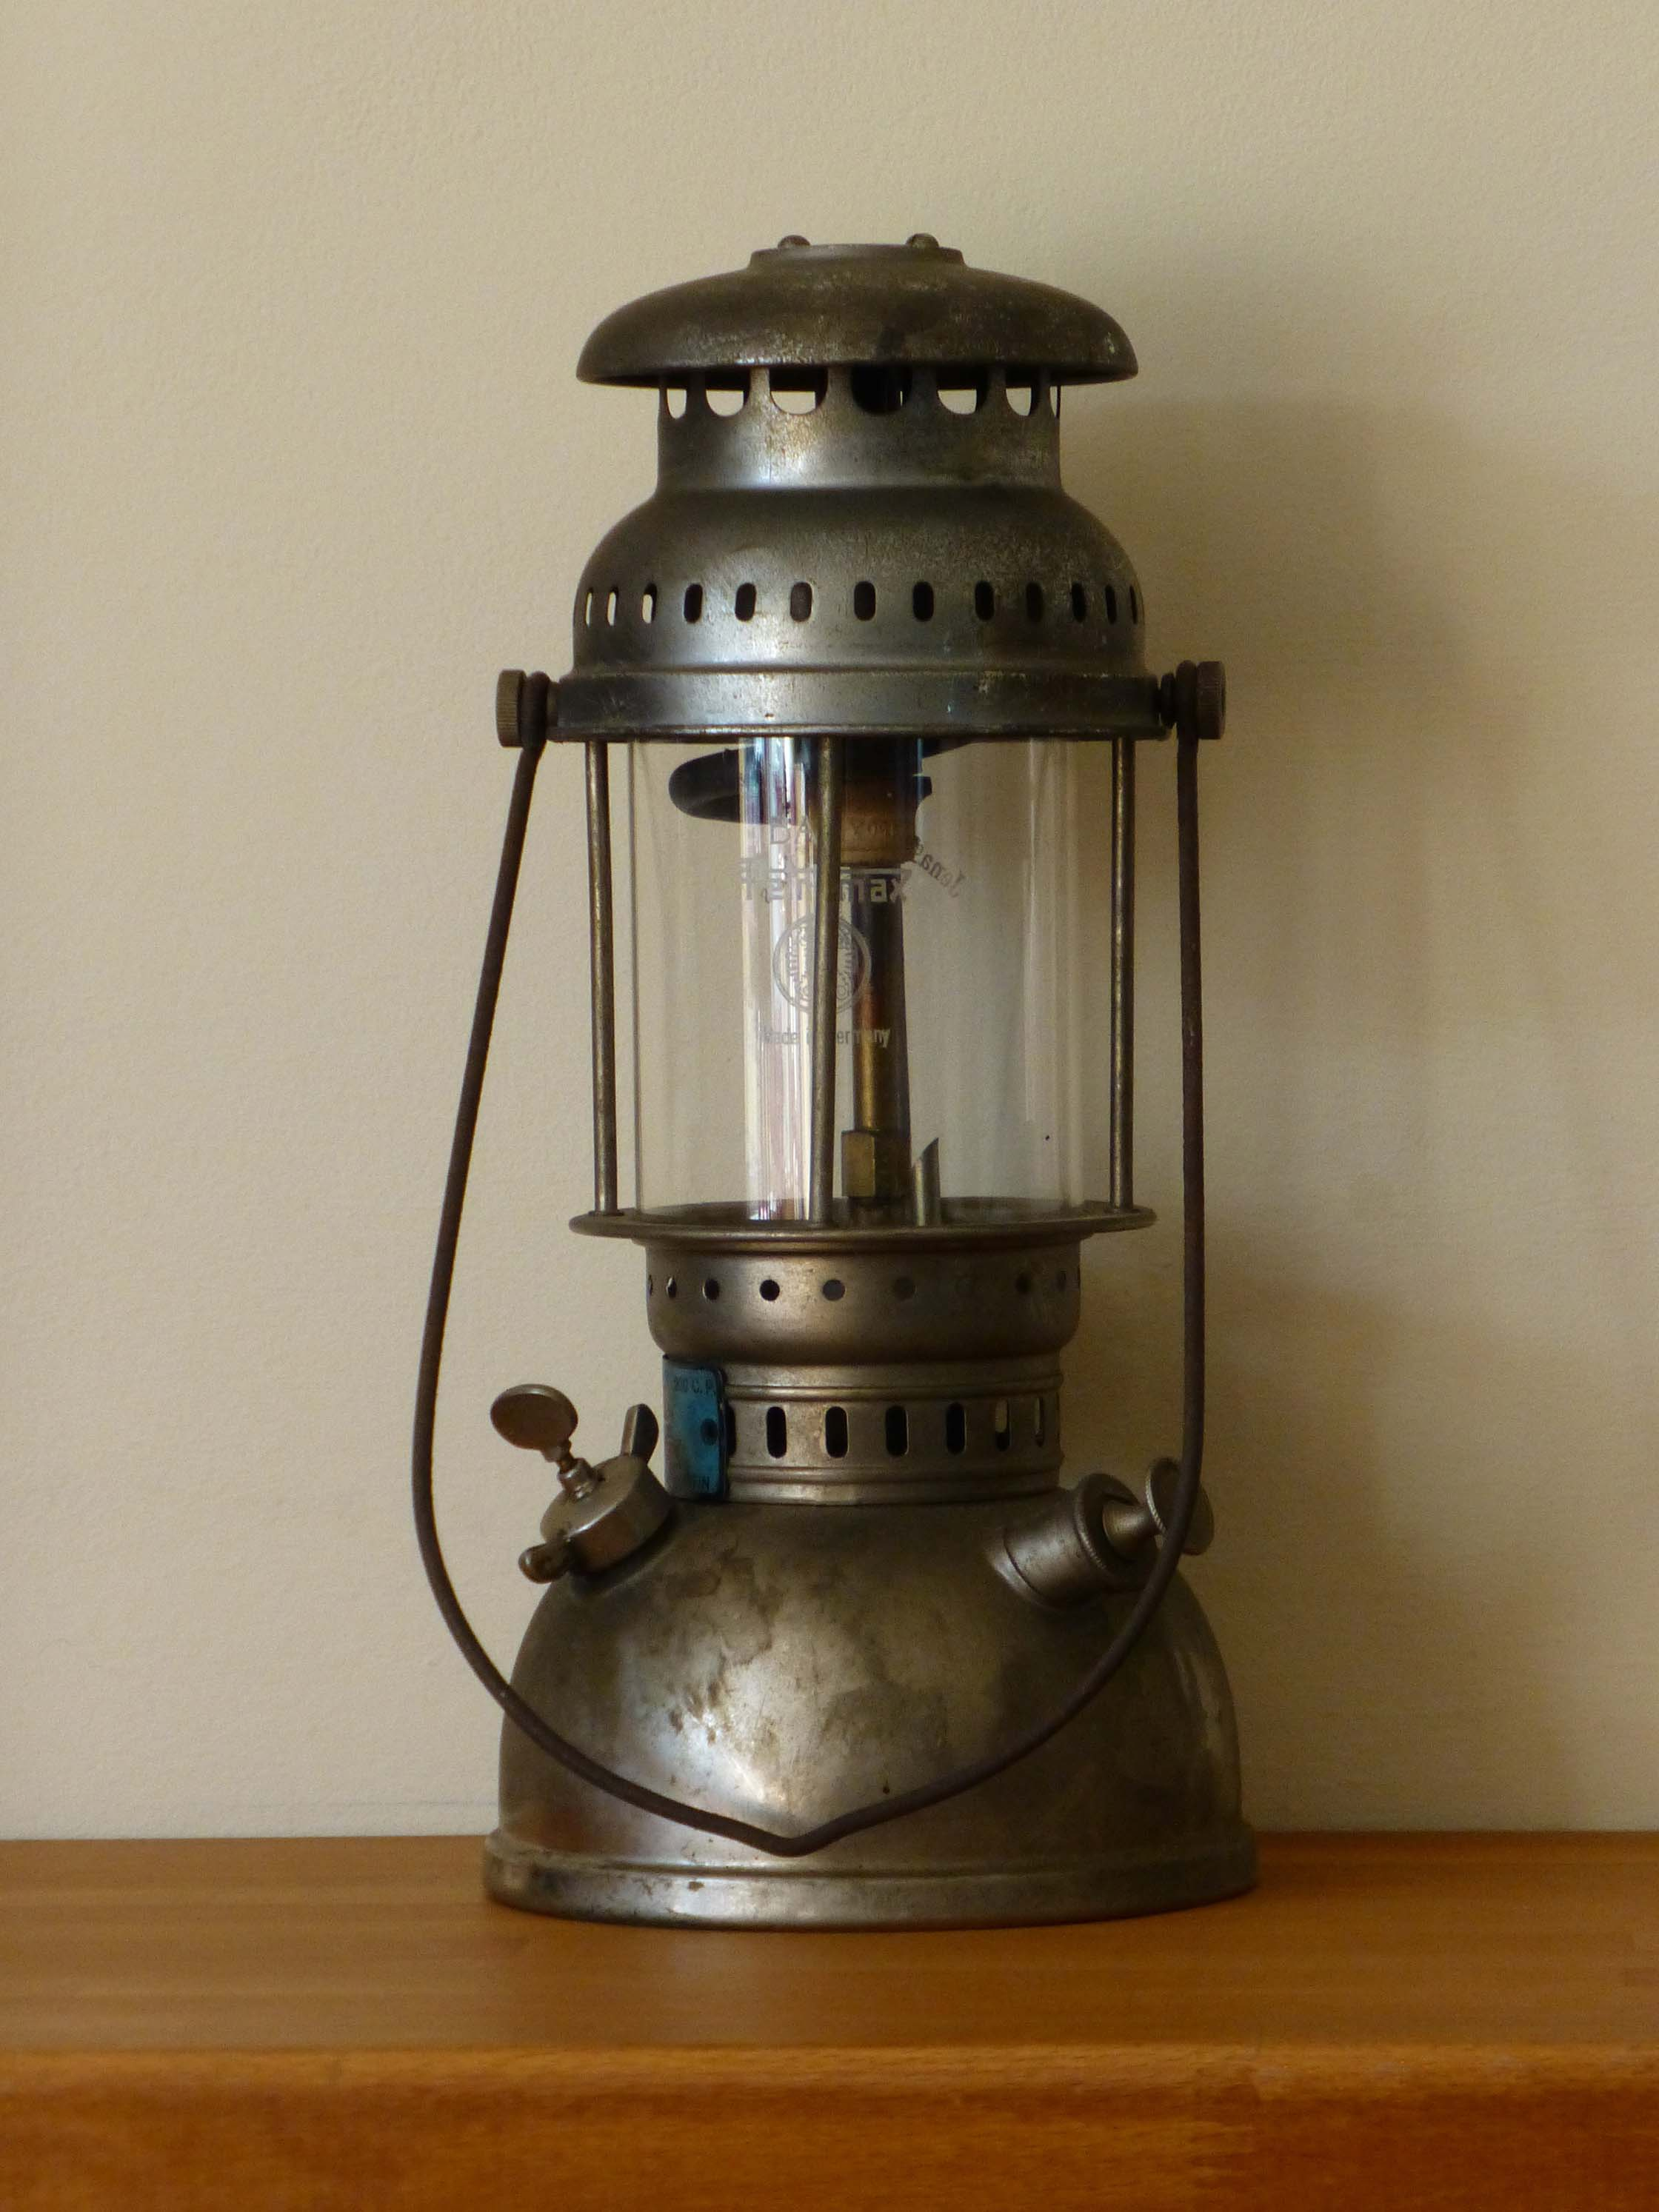 10 benefits of Antique aladdin oil lamps | Warisan Lighting